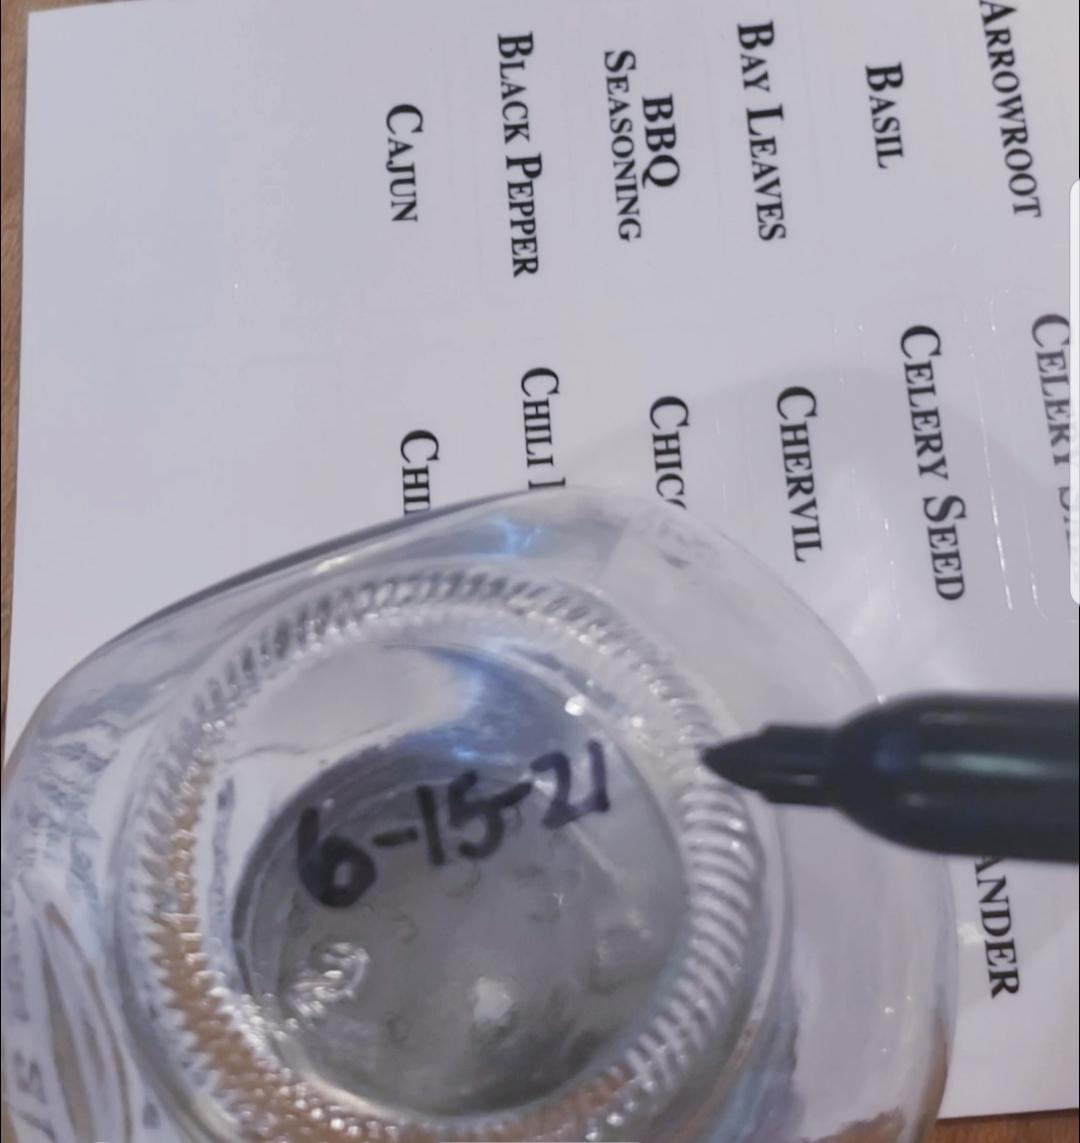 writing of expiration date of spices on bottom of jar